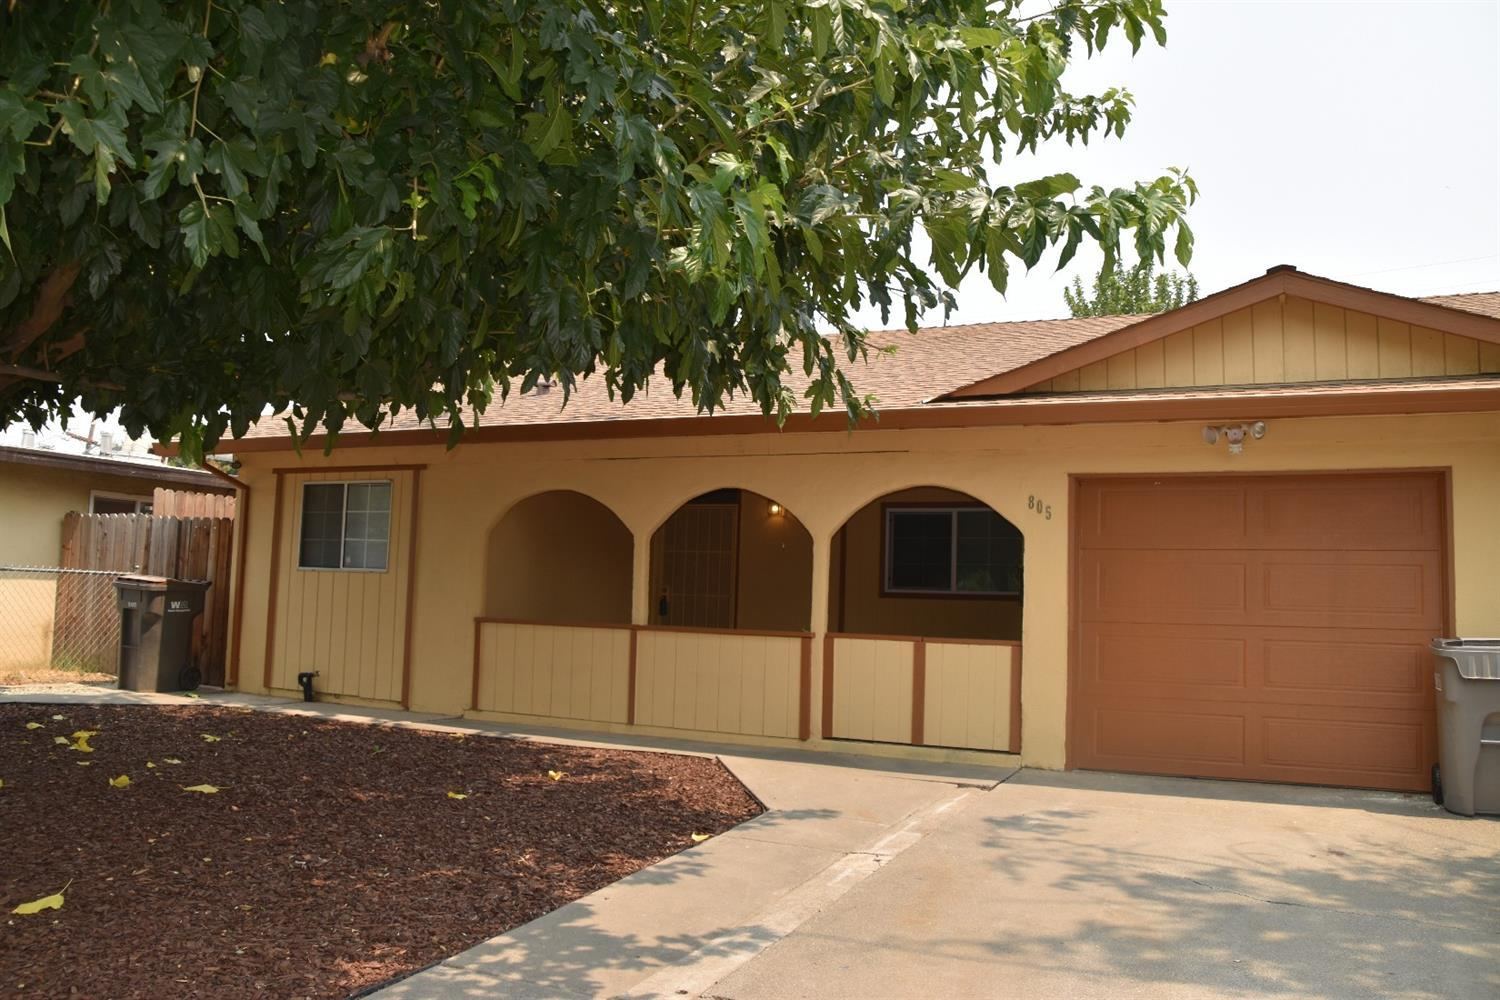 Local Broderick, CA Real Estate Listings and Homes for Sale | BHGRE